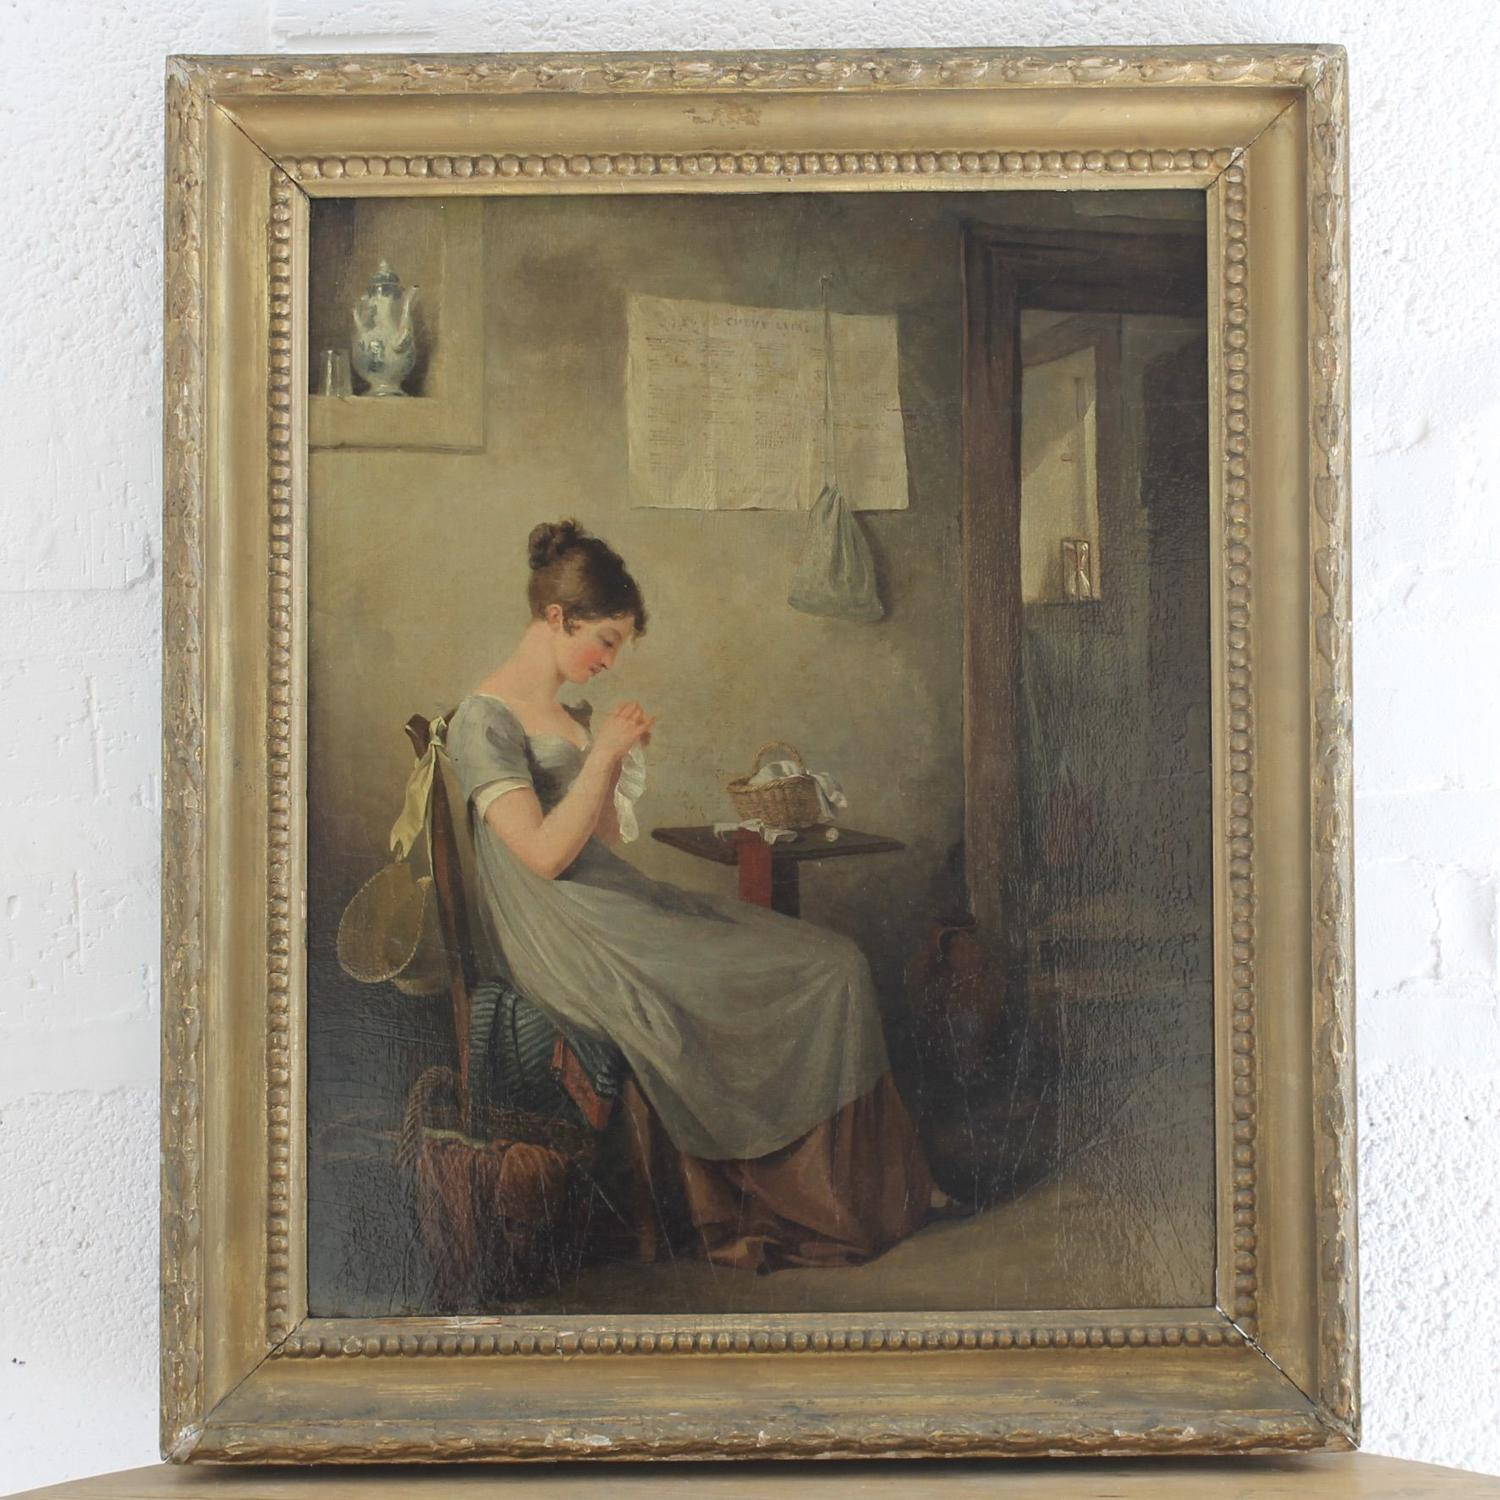 Regency Interior with Young Woman Sewing